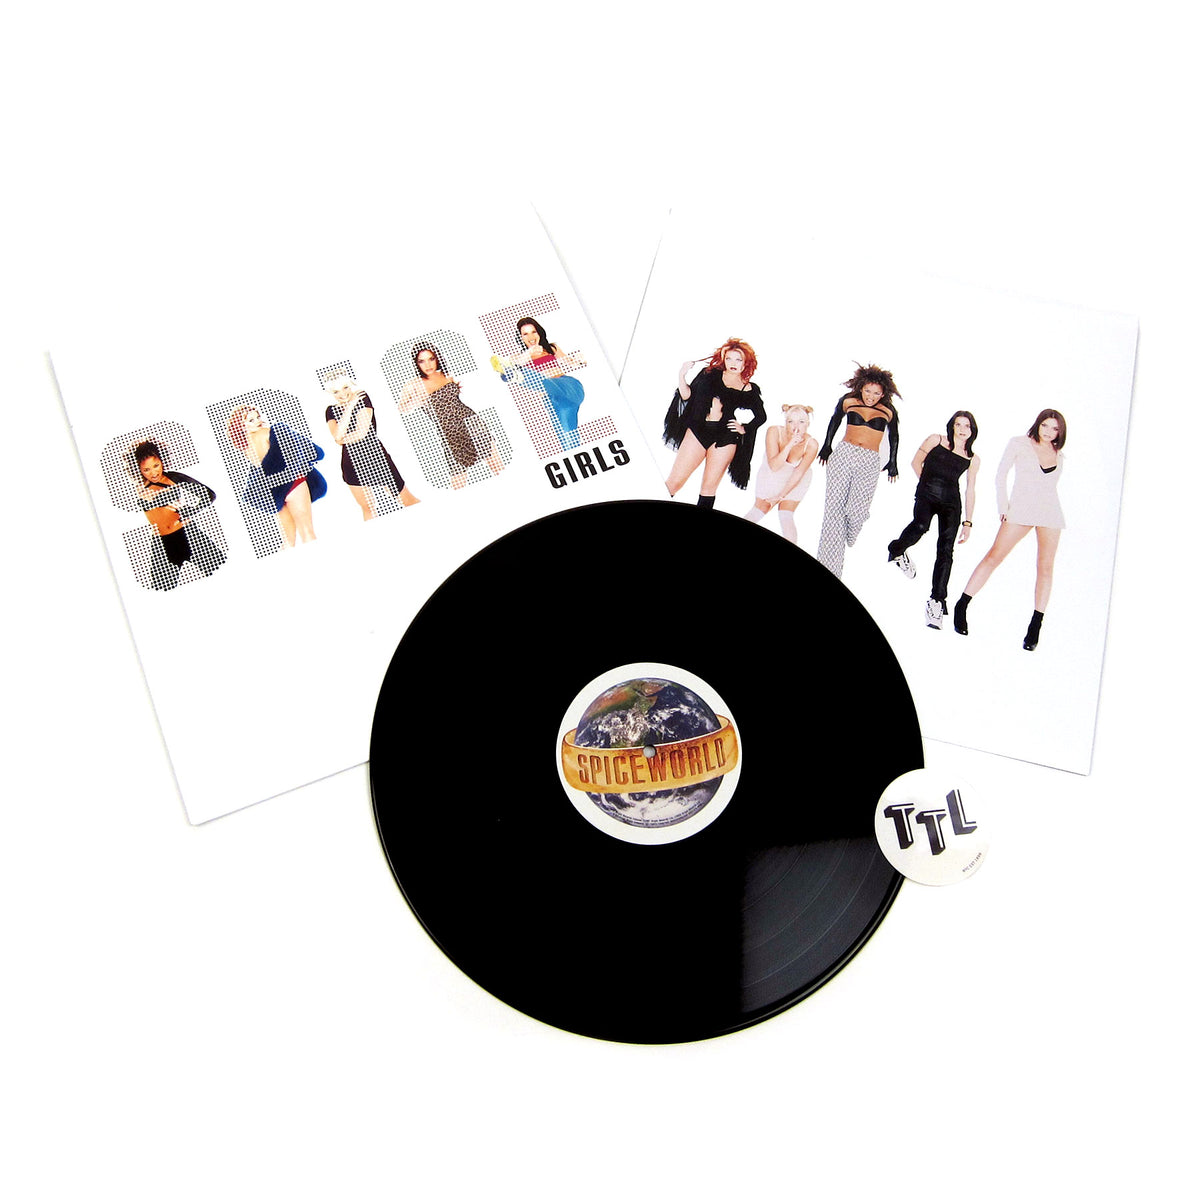 Spice Girls: Spiceworld (180g) Vinyl LP